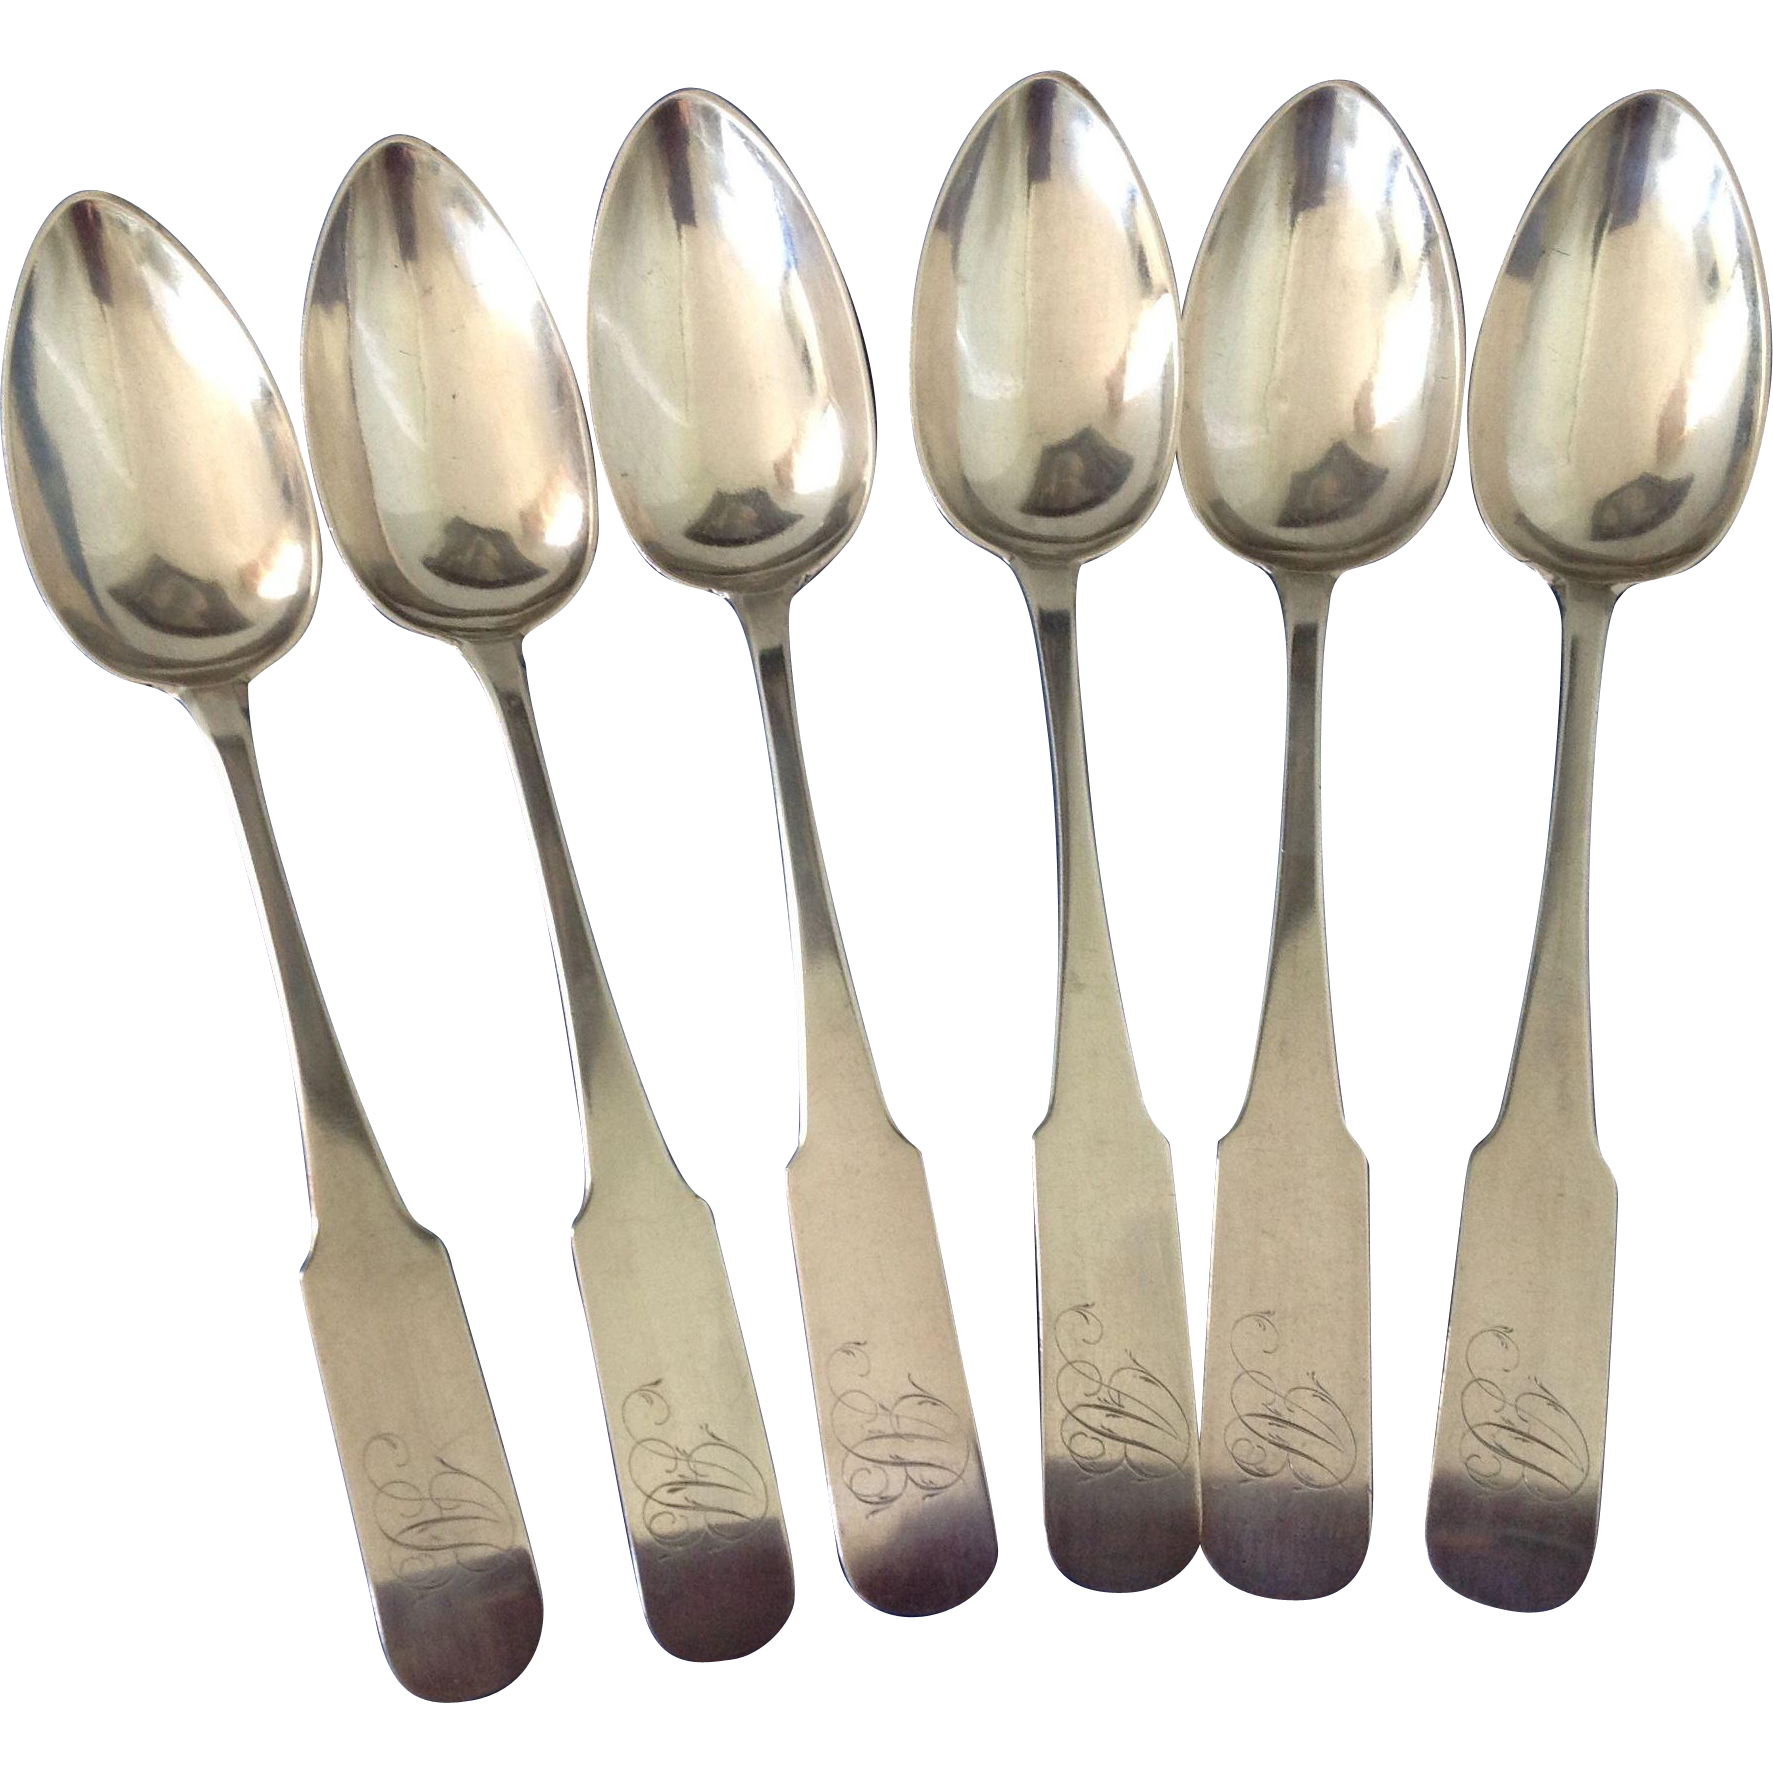 c1795 Set of 6 American Coin Silver Serving Spoons / Oversize Table Spoons ~ John Schanck NY NY